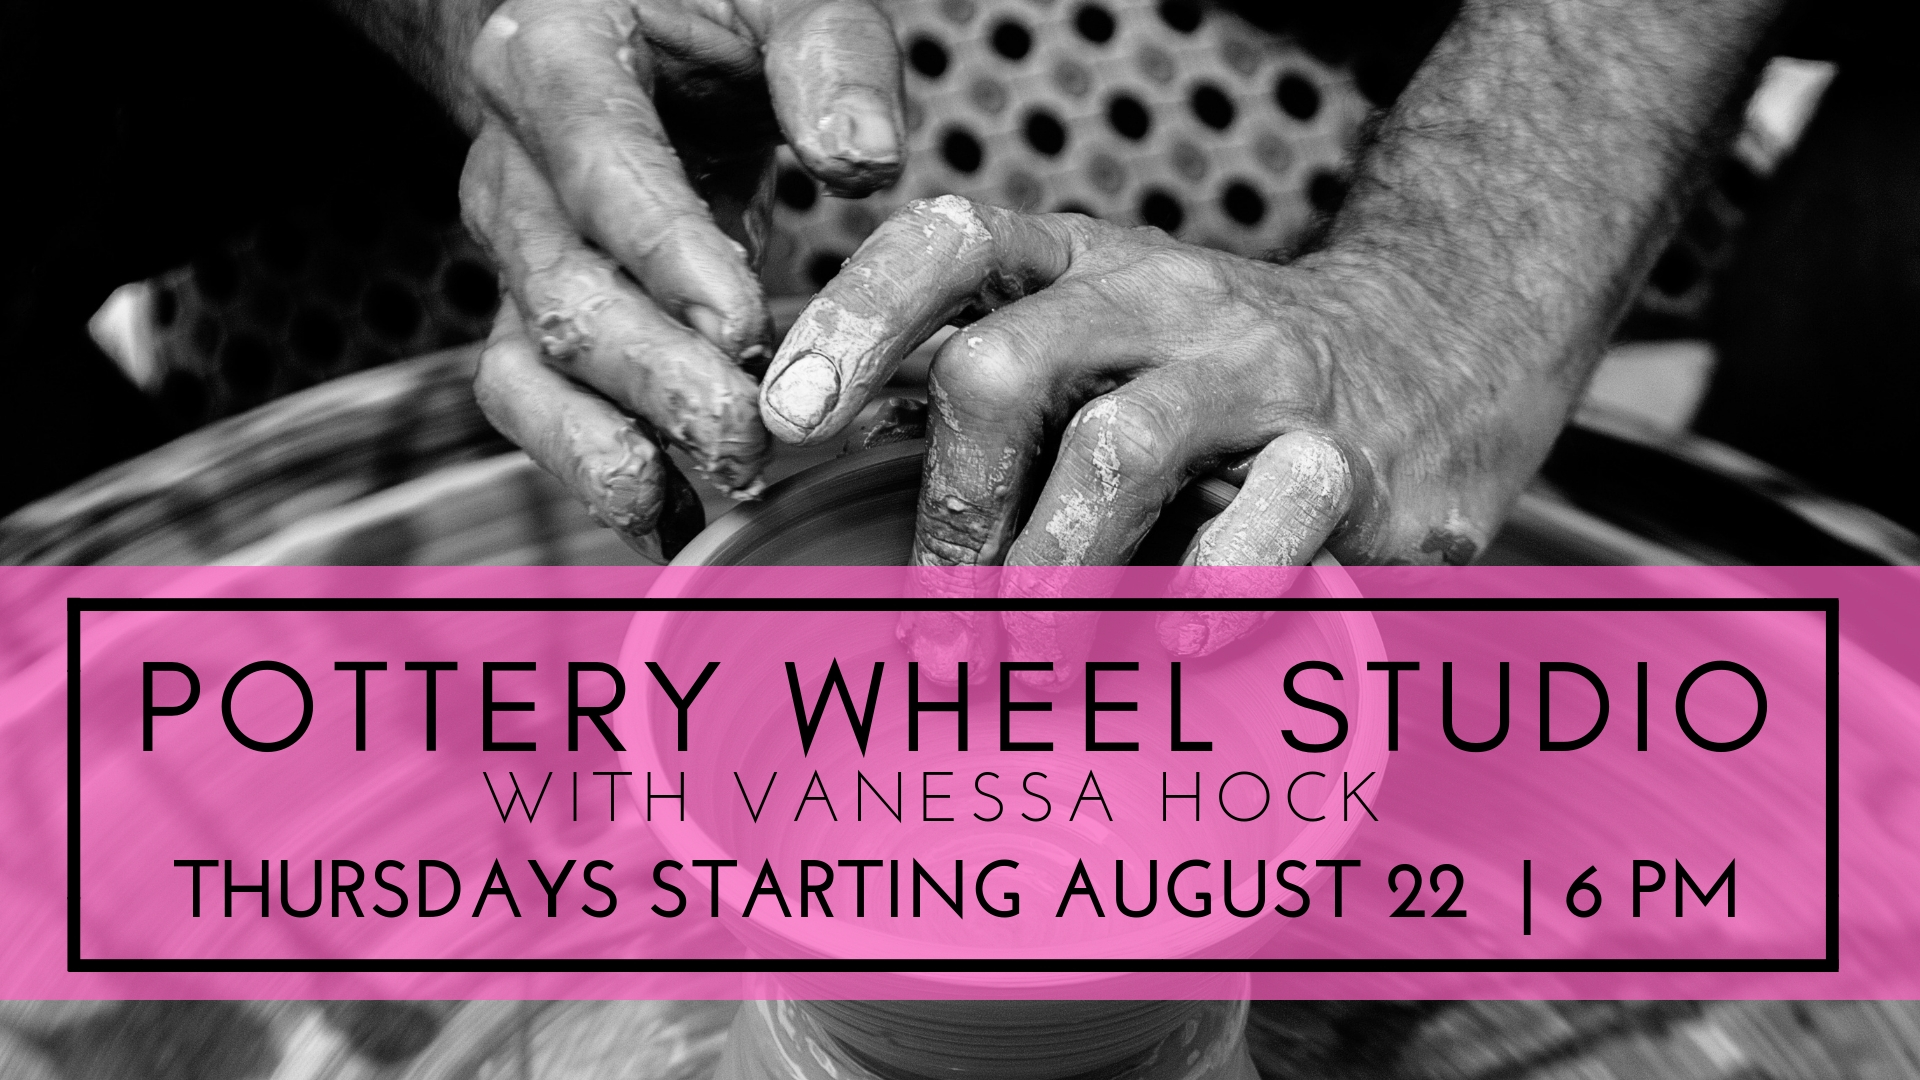 thursday-pottery-AUGUST.jpg